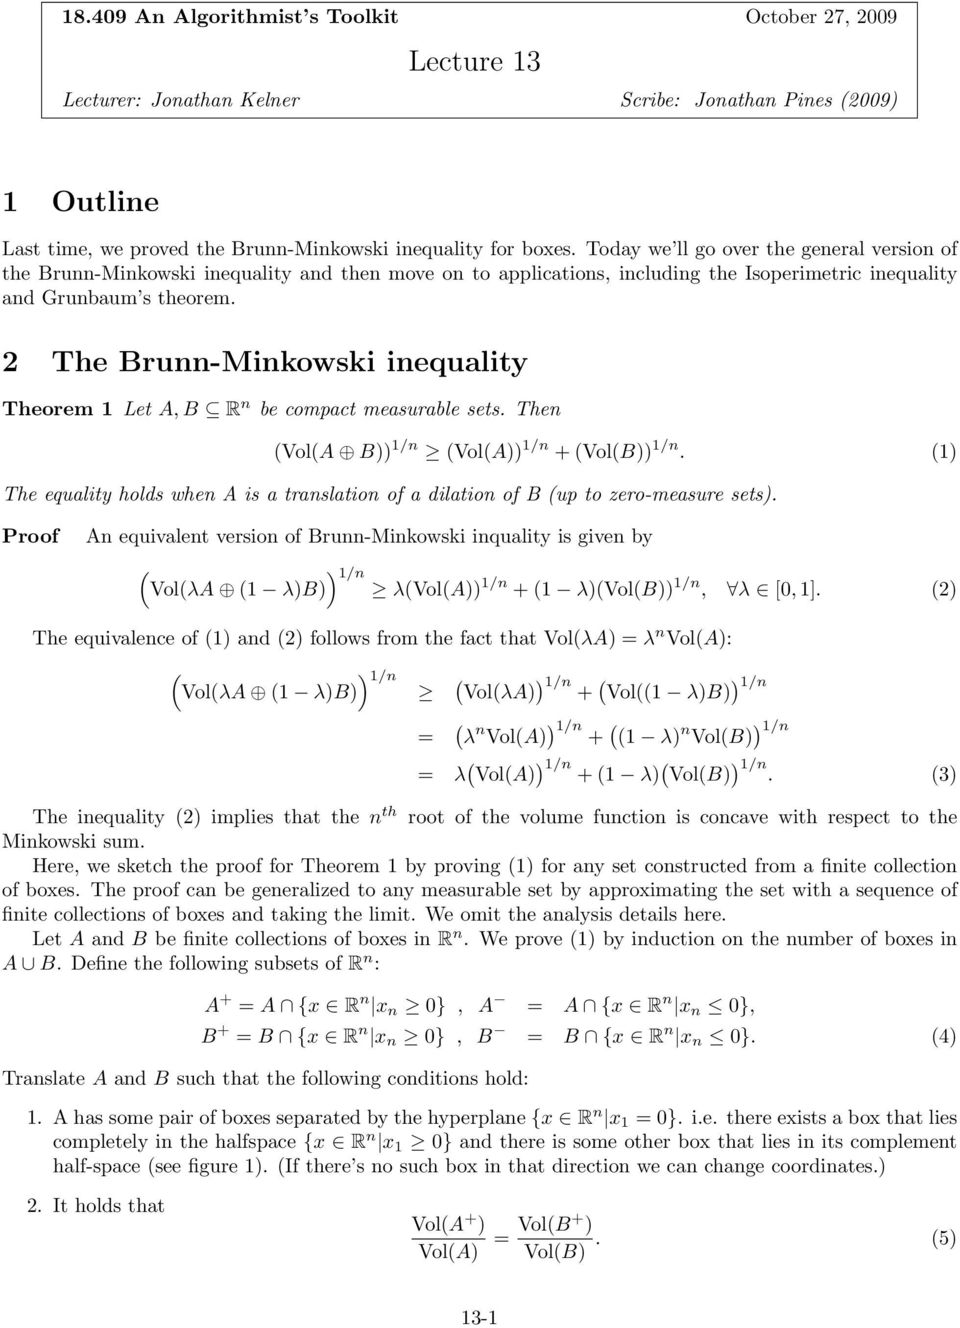 2 The Bru-Mikowski iequality Theorem 1 Let A, B R be compact measurable sets. The (Vol(A B)) 1/ (Vol(A)) 1/ + (Vol(B)) 1/.